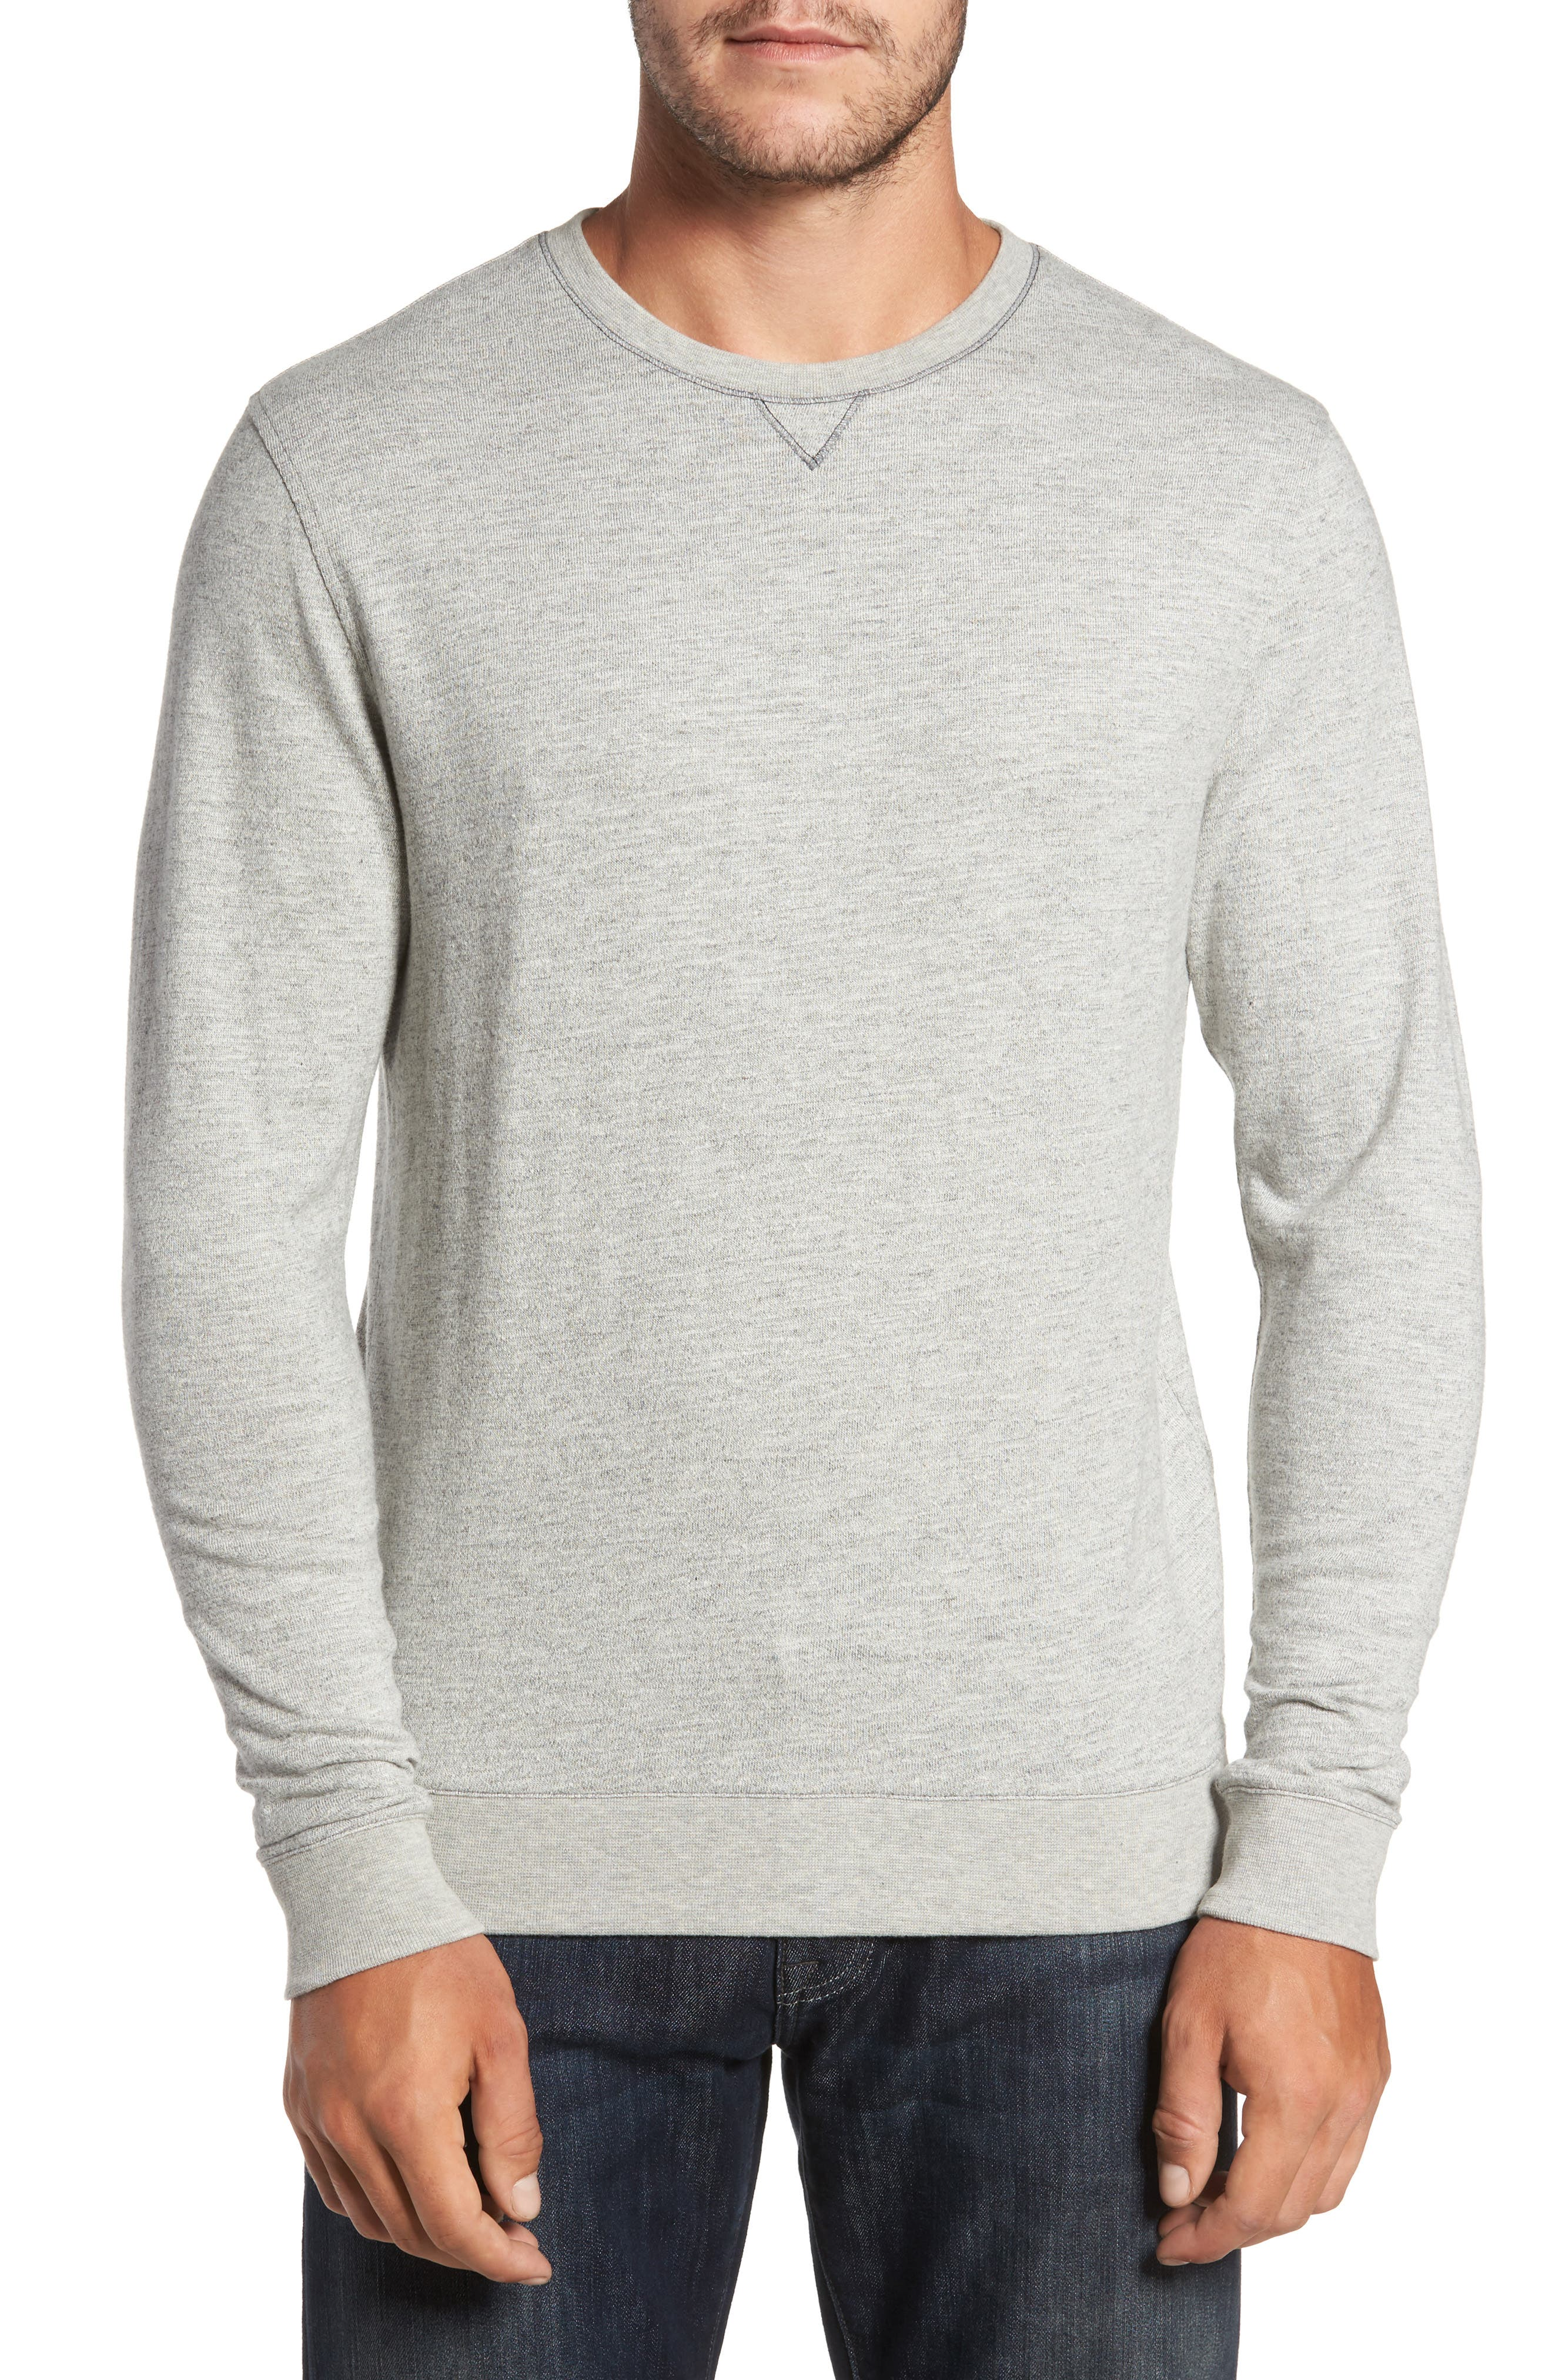 Vienna French Terry T-Shirt,                         Main,                         color, Light Grey